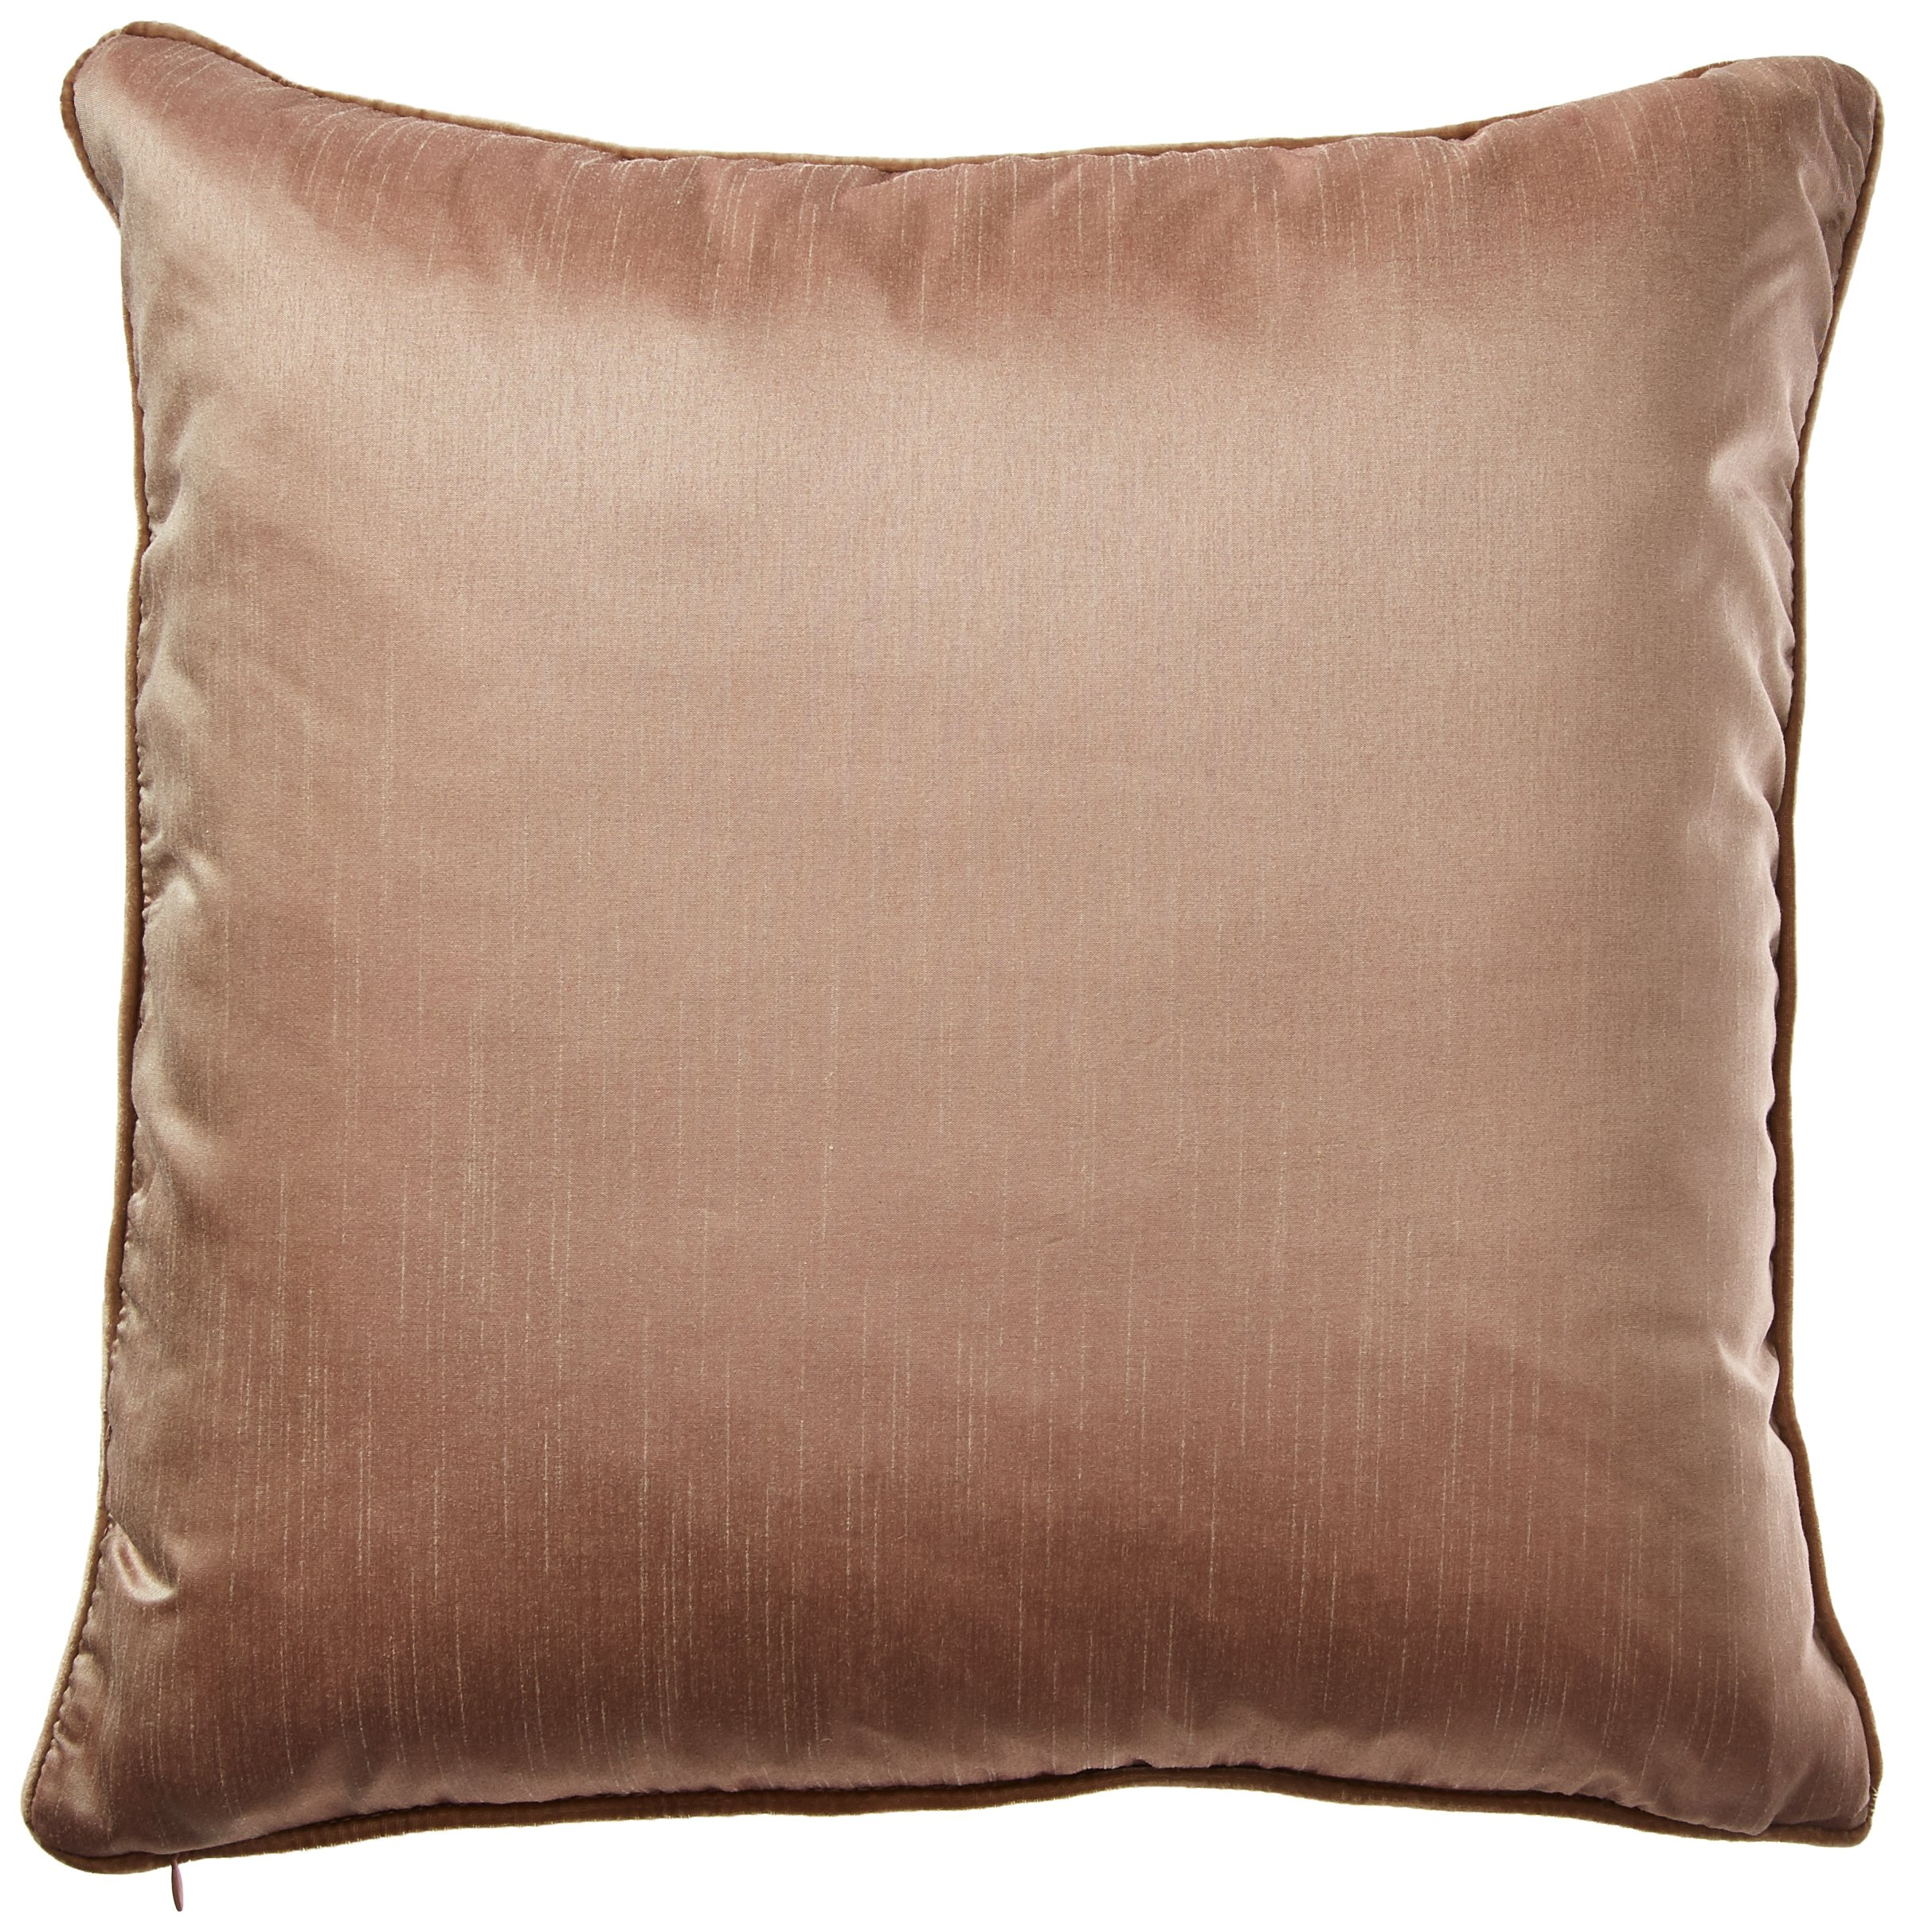 Poetic Wanderlust By Tracy Porter Peach Pillow, 20x20, Wish